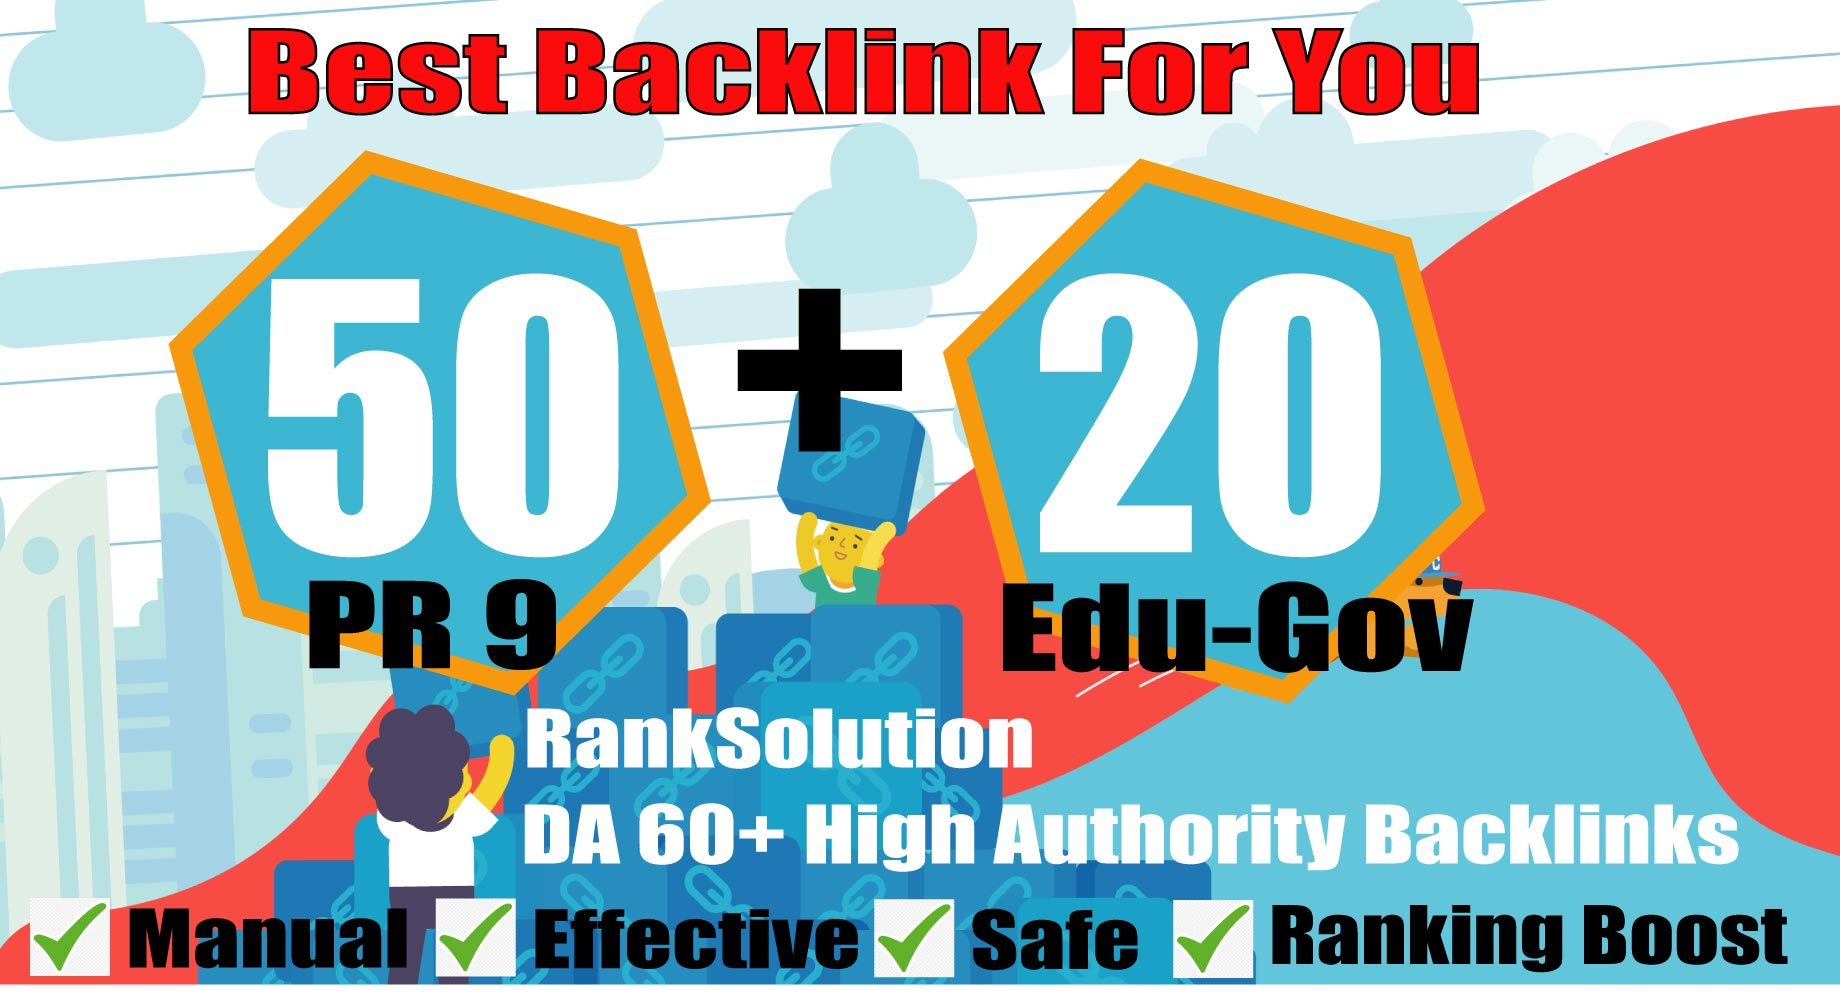 manually do 50 PR9+ 20 EDU-GOV Backlinks From Authority Domains